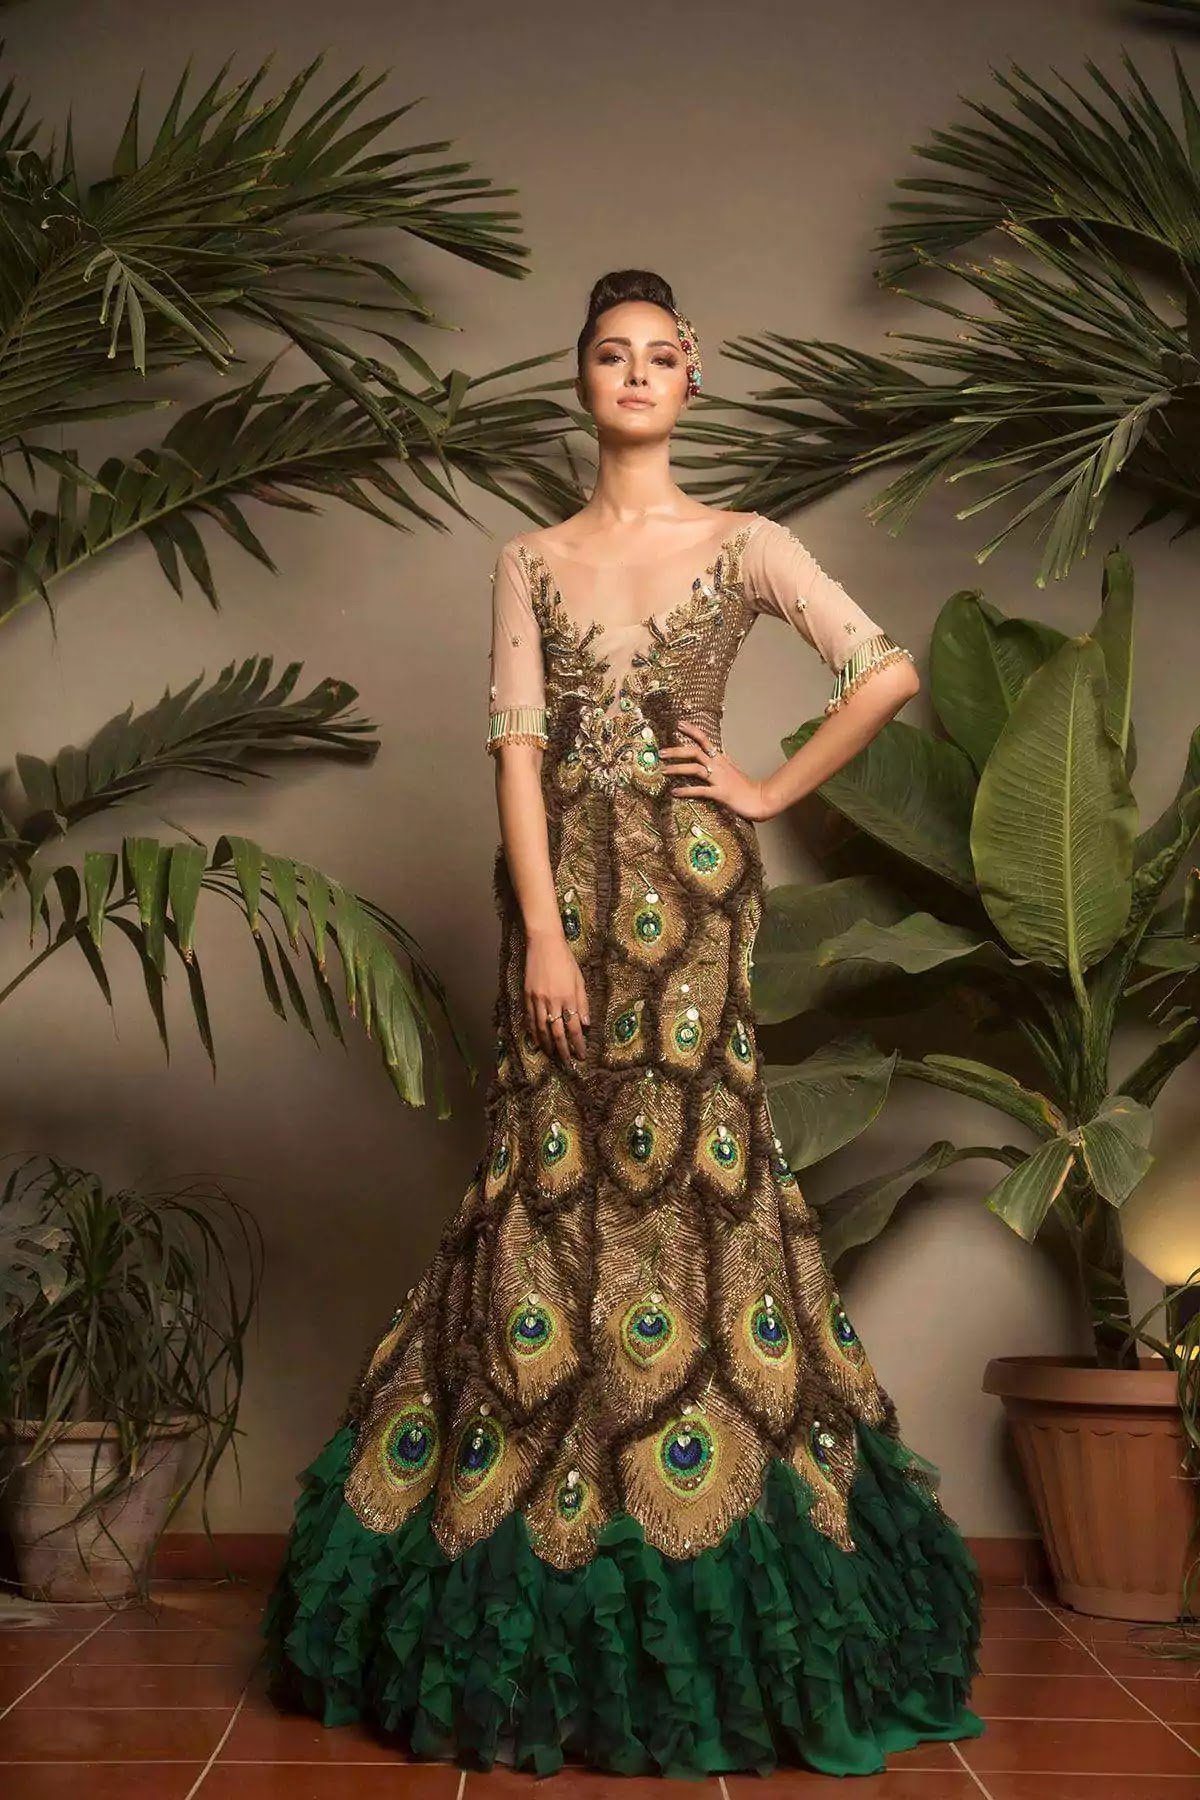 Pic: Nimra Khan Looks Blissful in Her Latest Photoshoot